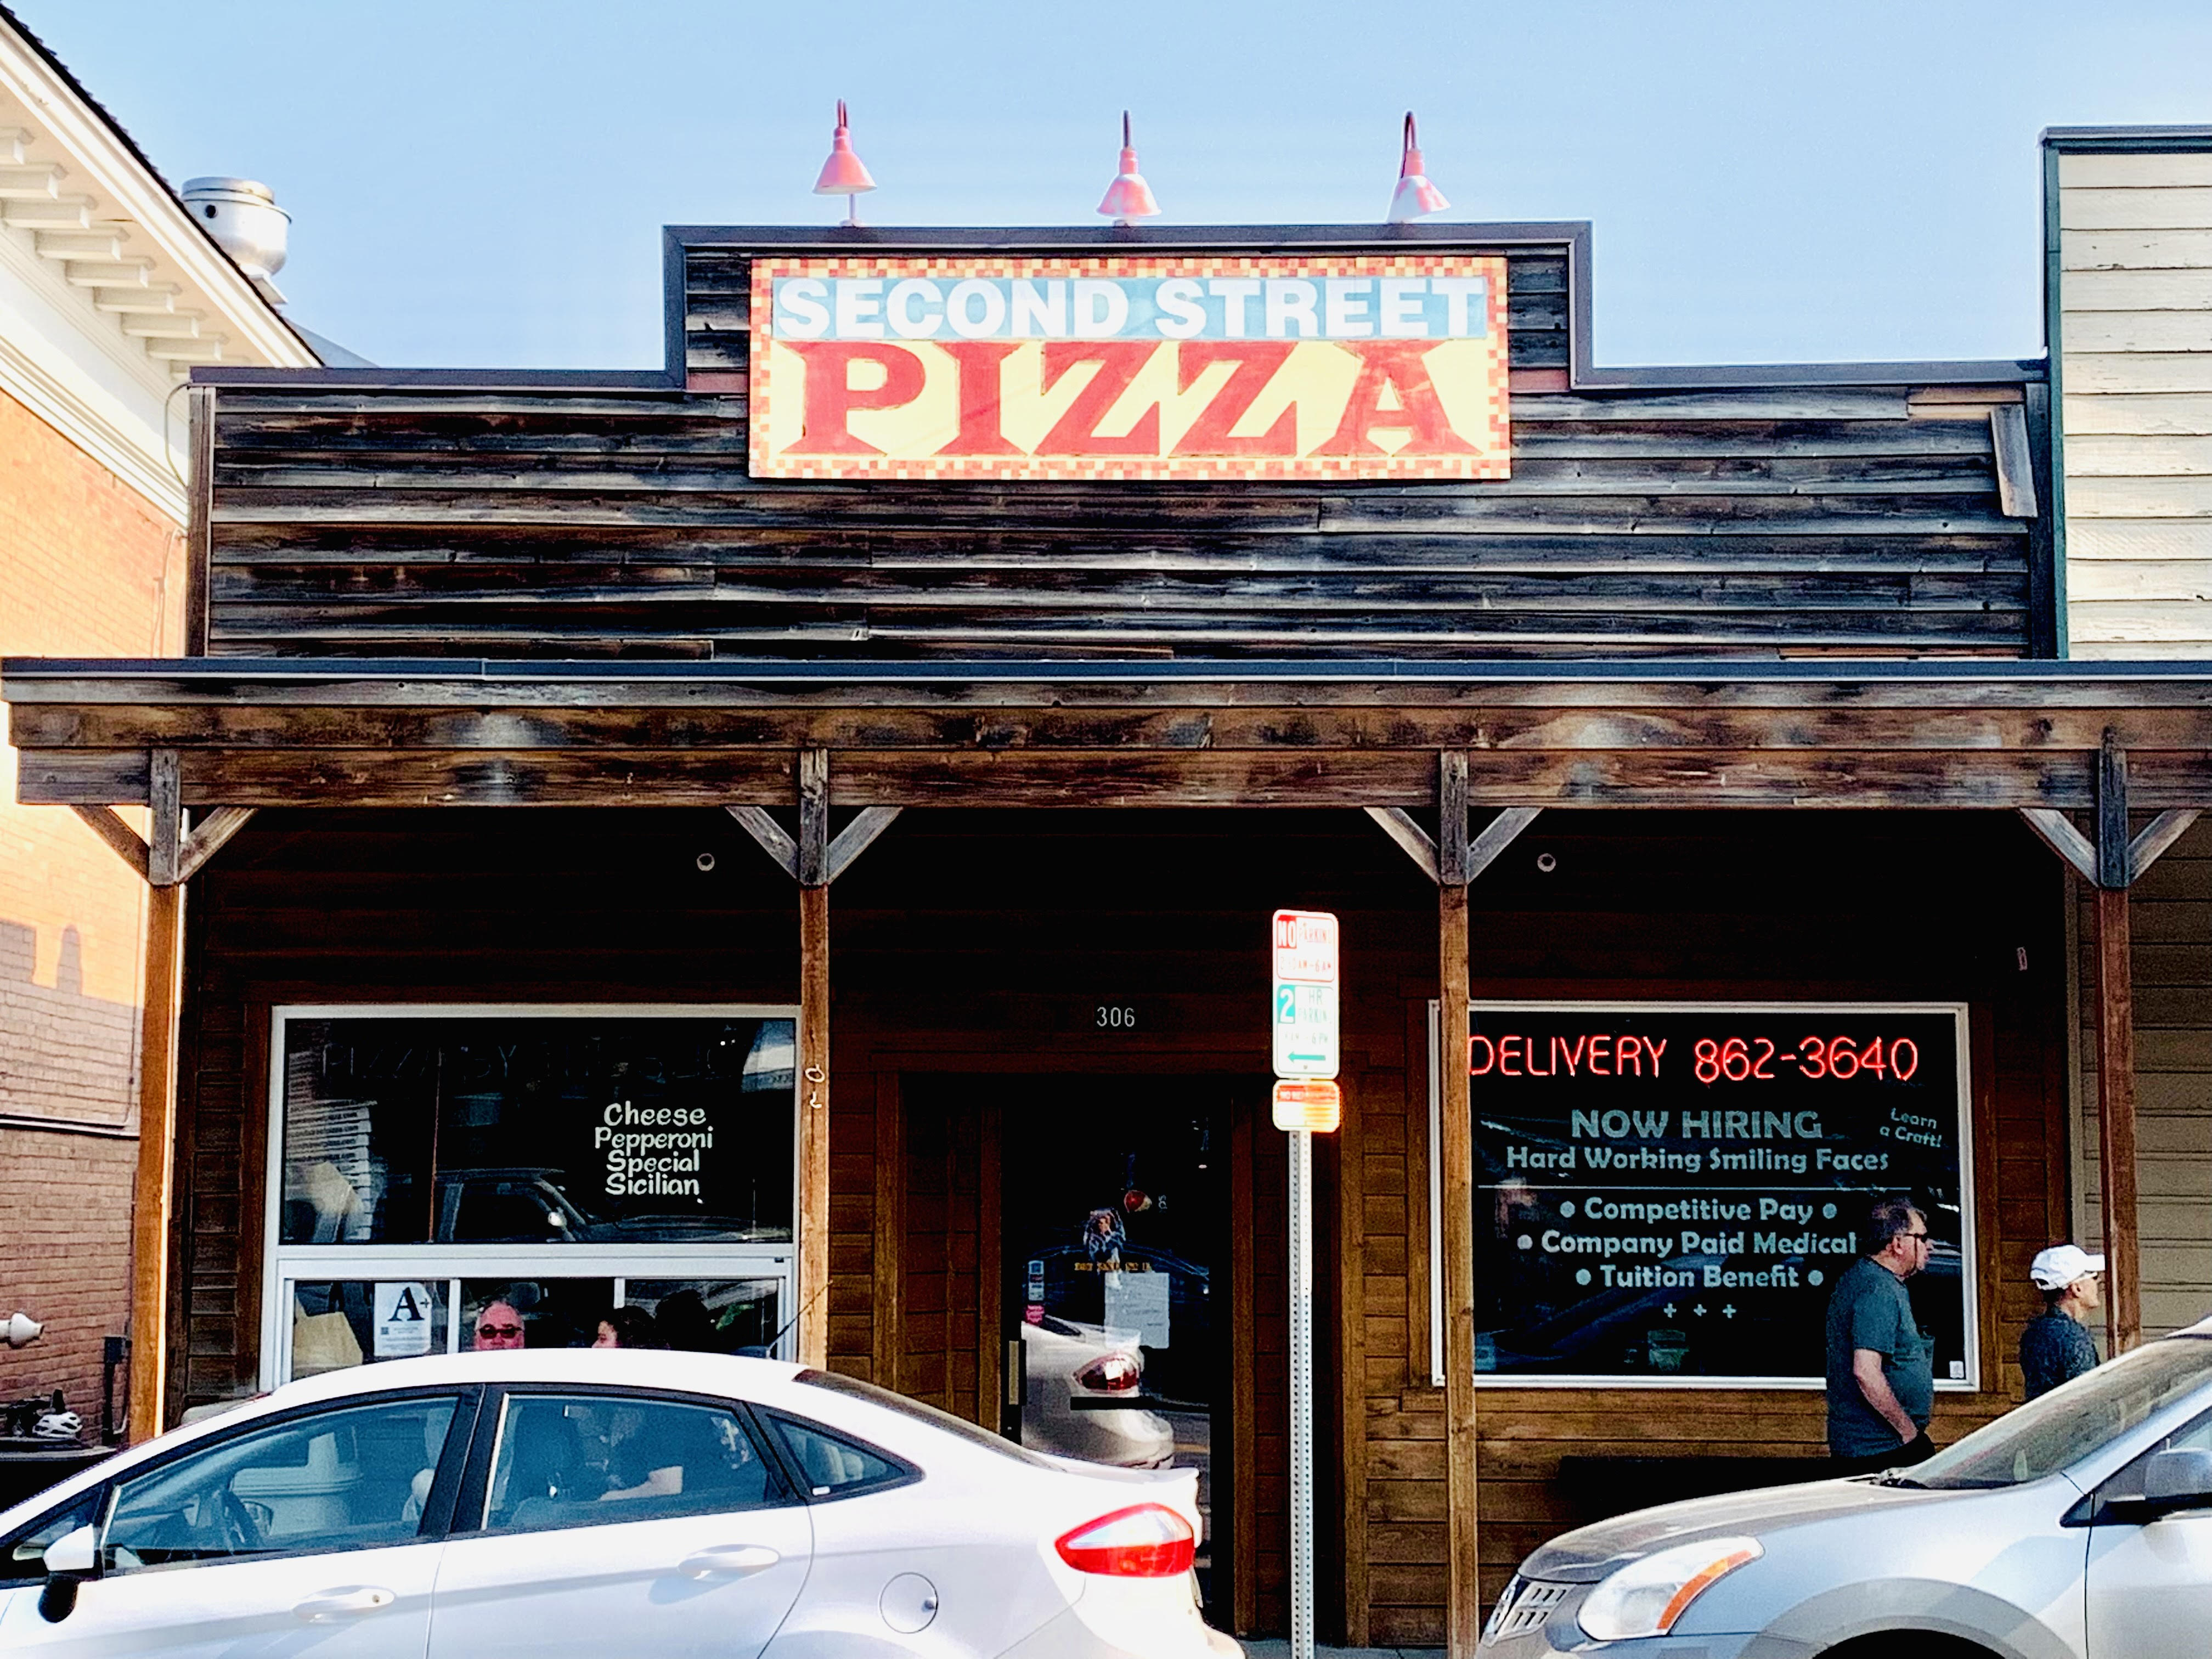 Second Street Pizza store front (Featured as one of the best restaurants in Whitefish, Montana by top US family travel blog, Travel With A Plan!)